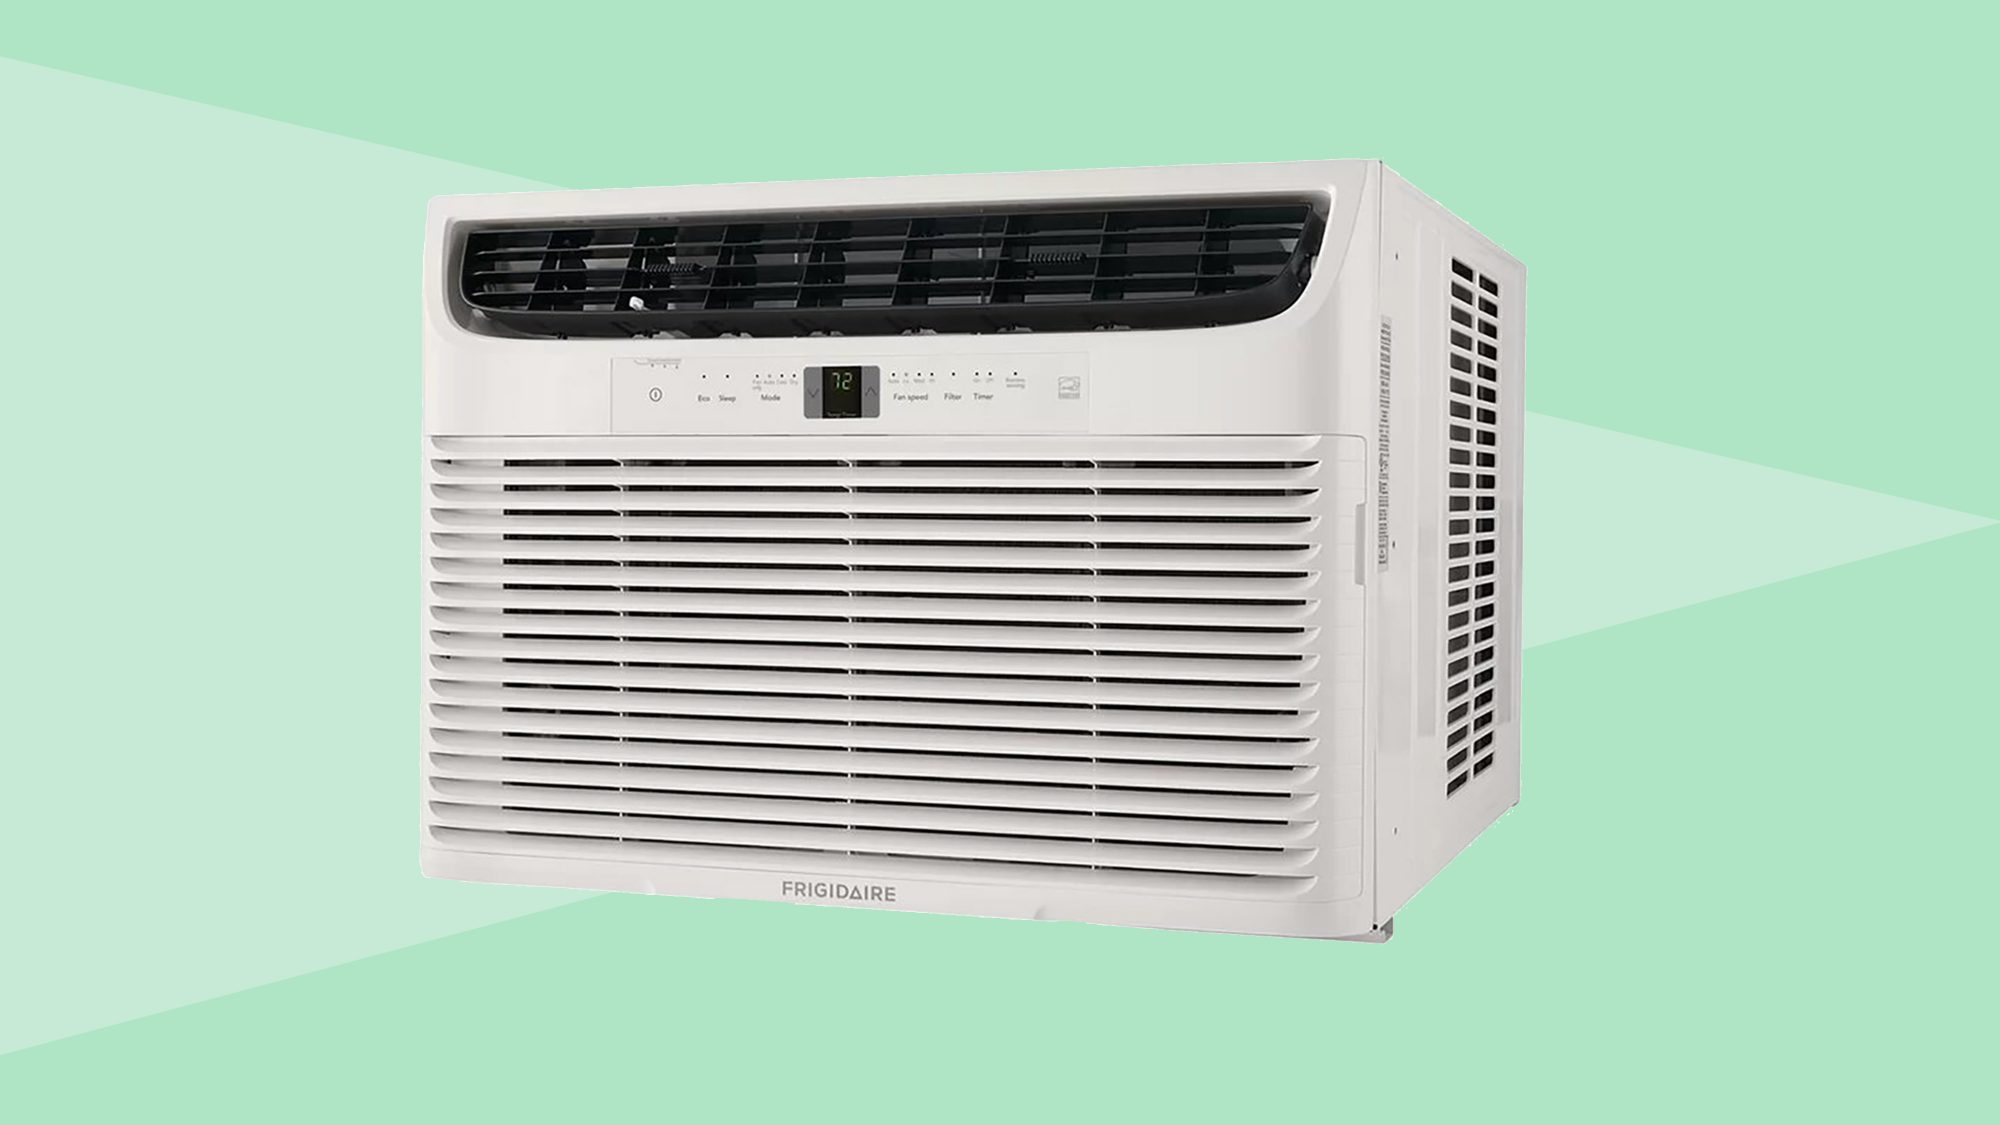 9 Best Window Air Conditioners Of 2020 According To Reviews Real Simple